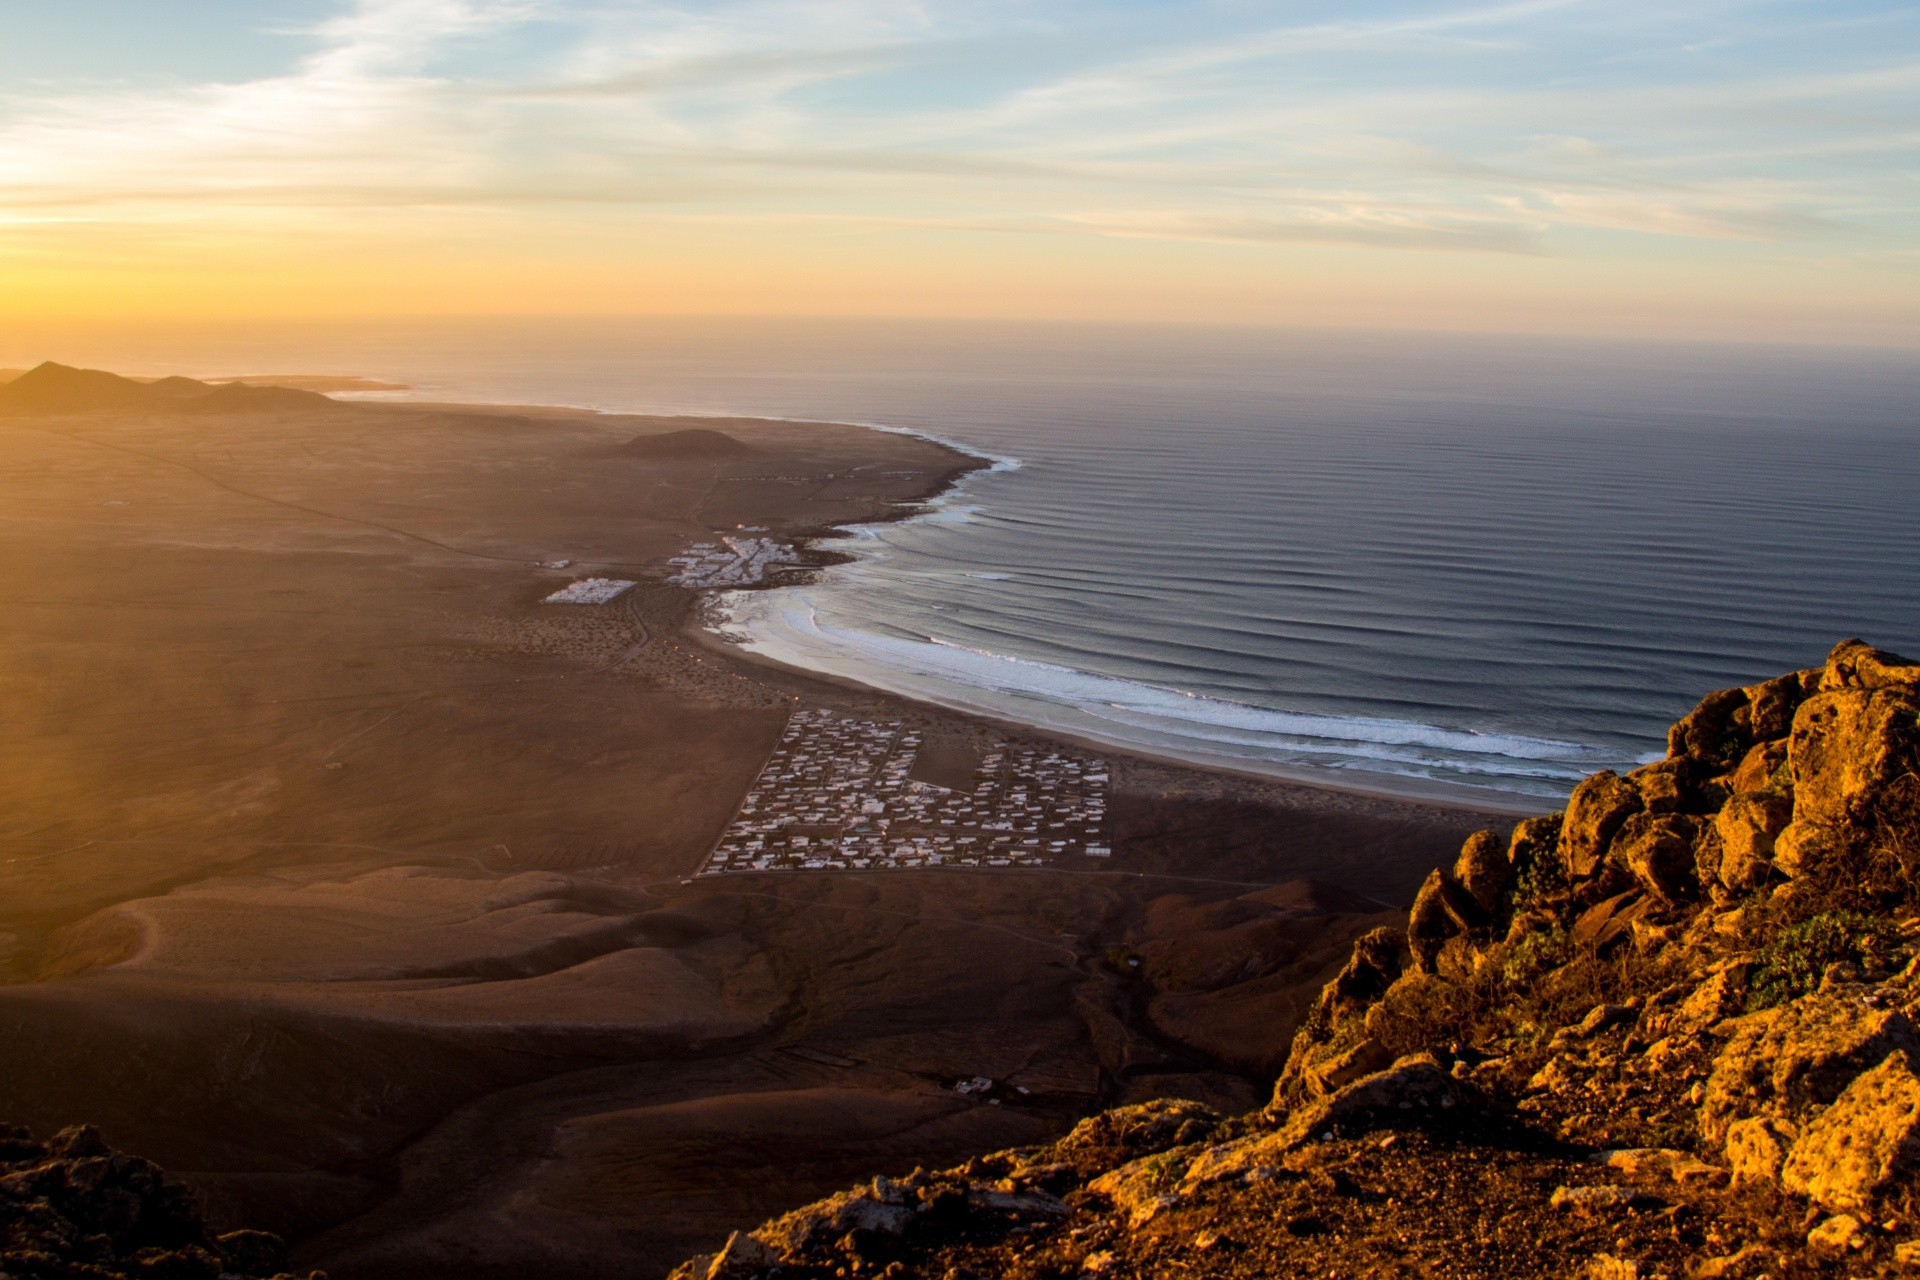 matthes's photo of Playa de Famara